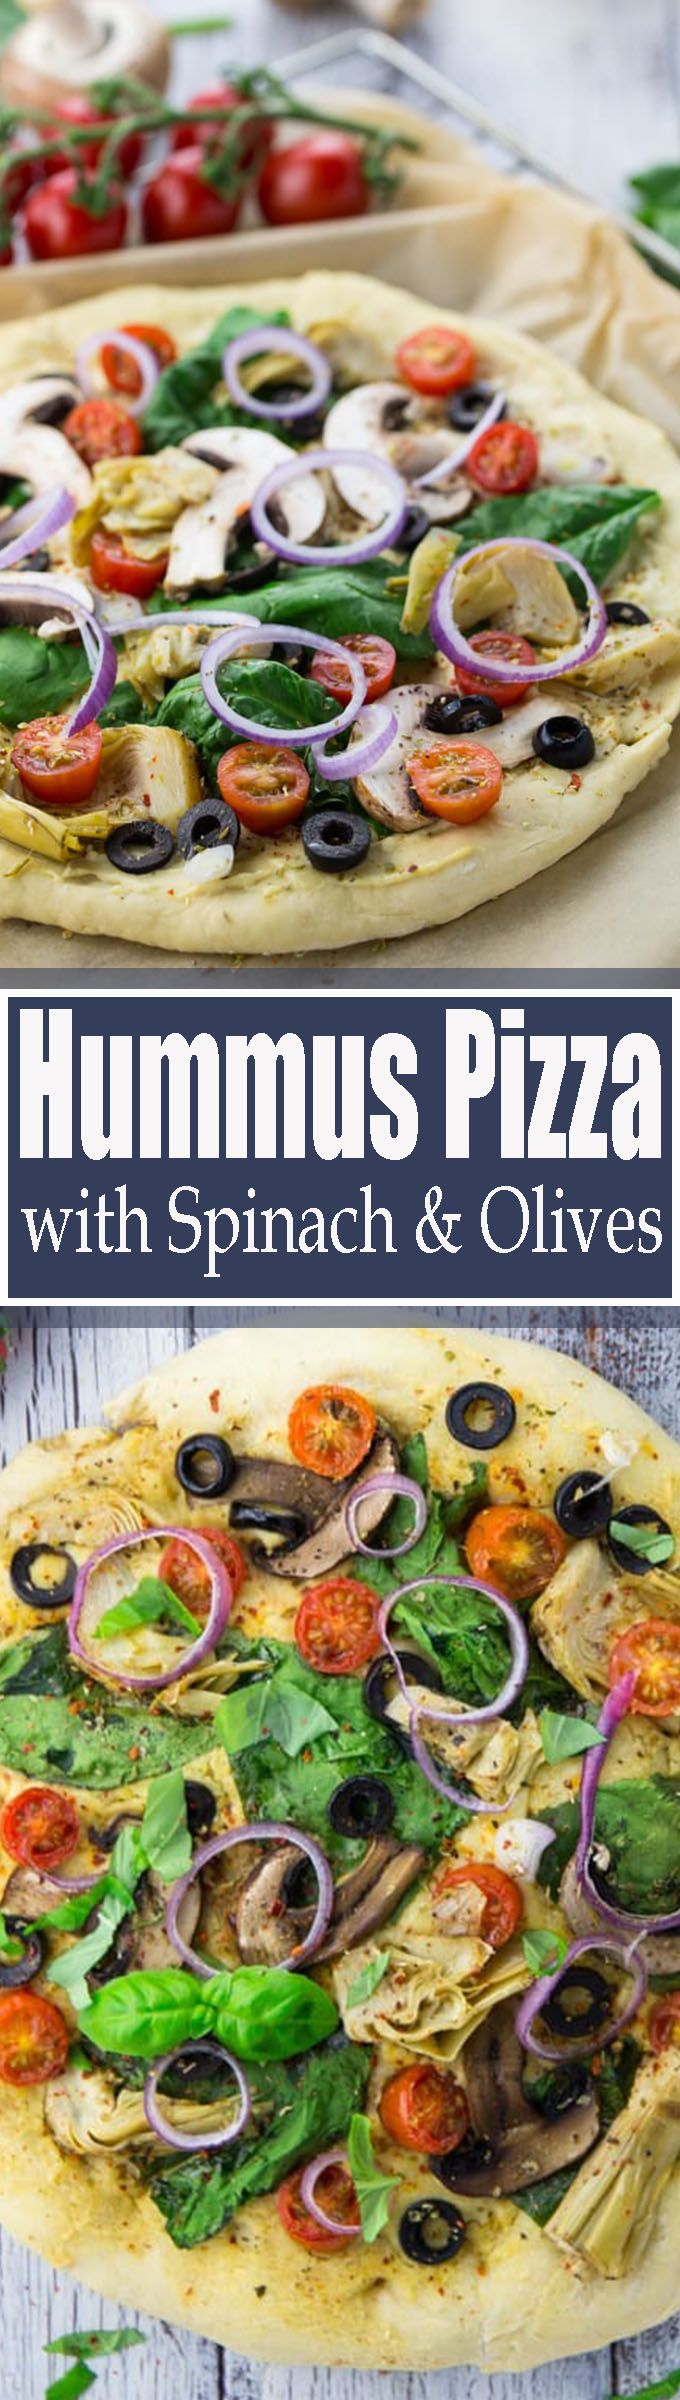 I absolutely LOVE this vegan hummus pizza with spinach, olives, and artichokes! Instead of tomato sauce, I used hummus as a base for this vegetarian pizza! Find more vegan recipes at veganheaven.org <3